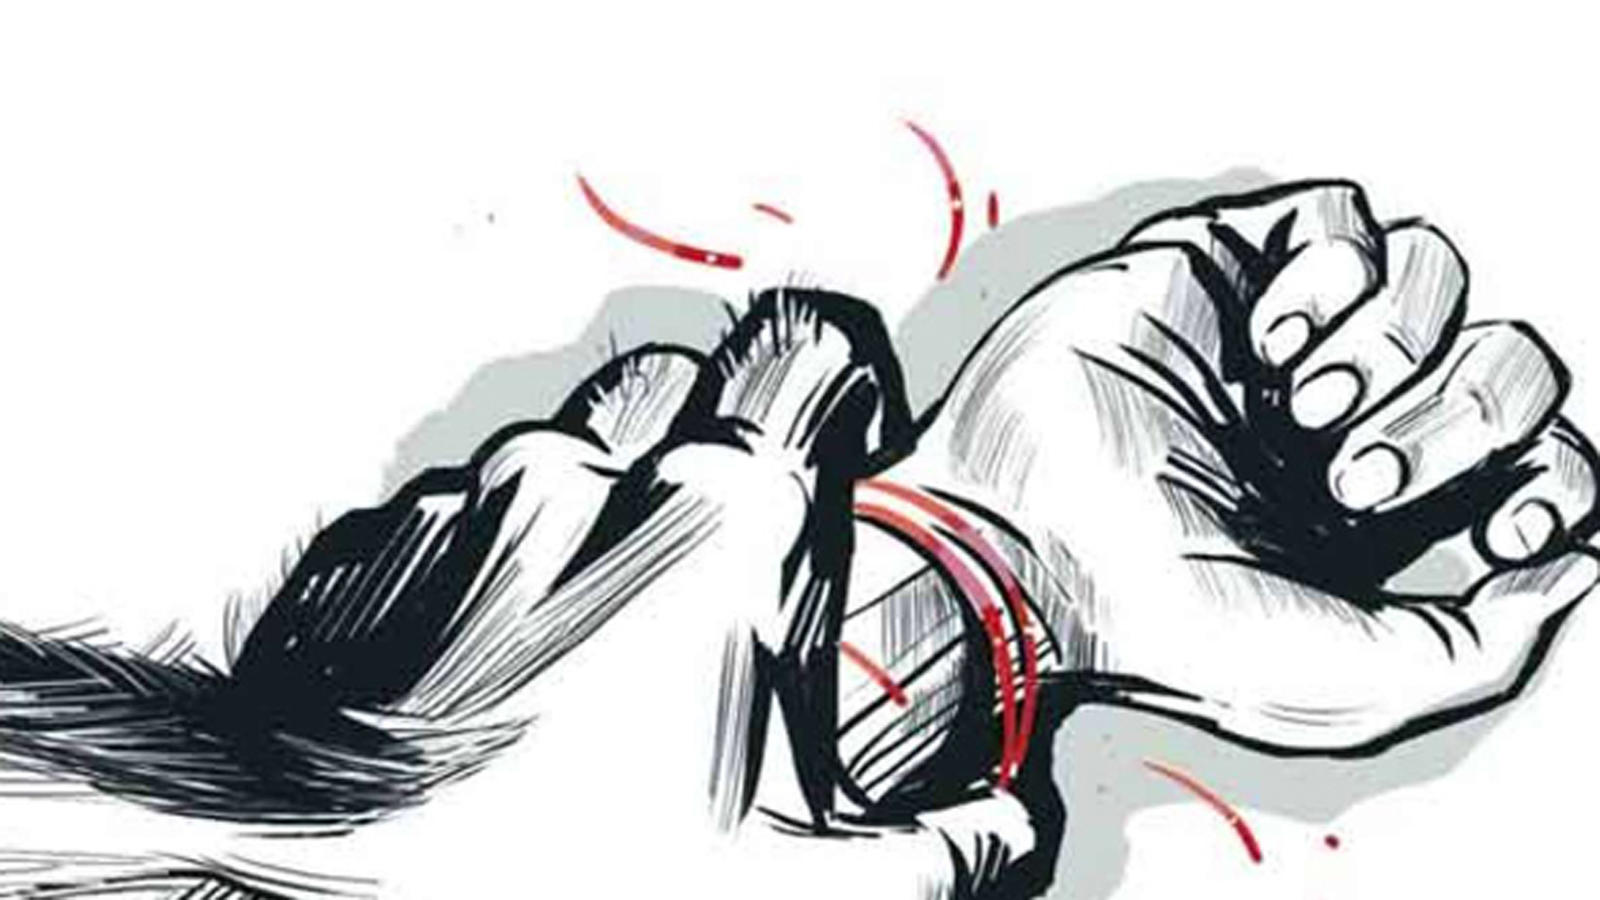 ghaziabad-32-yr-old-man-rapes-law-student-held